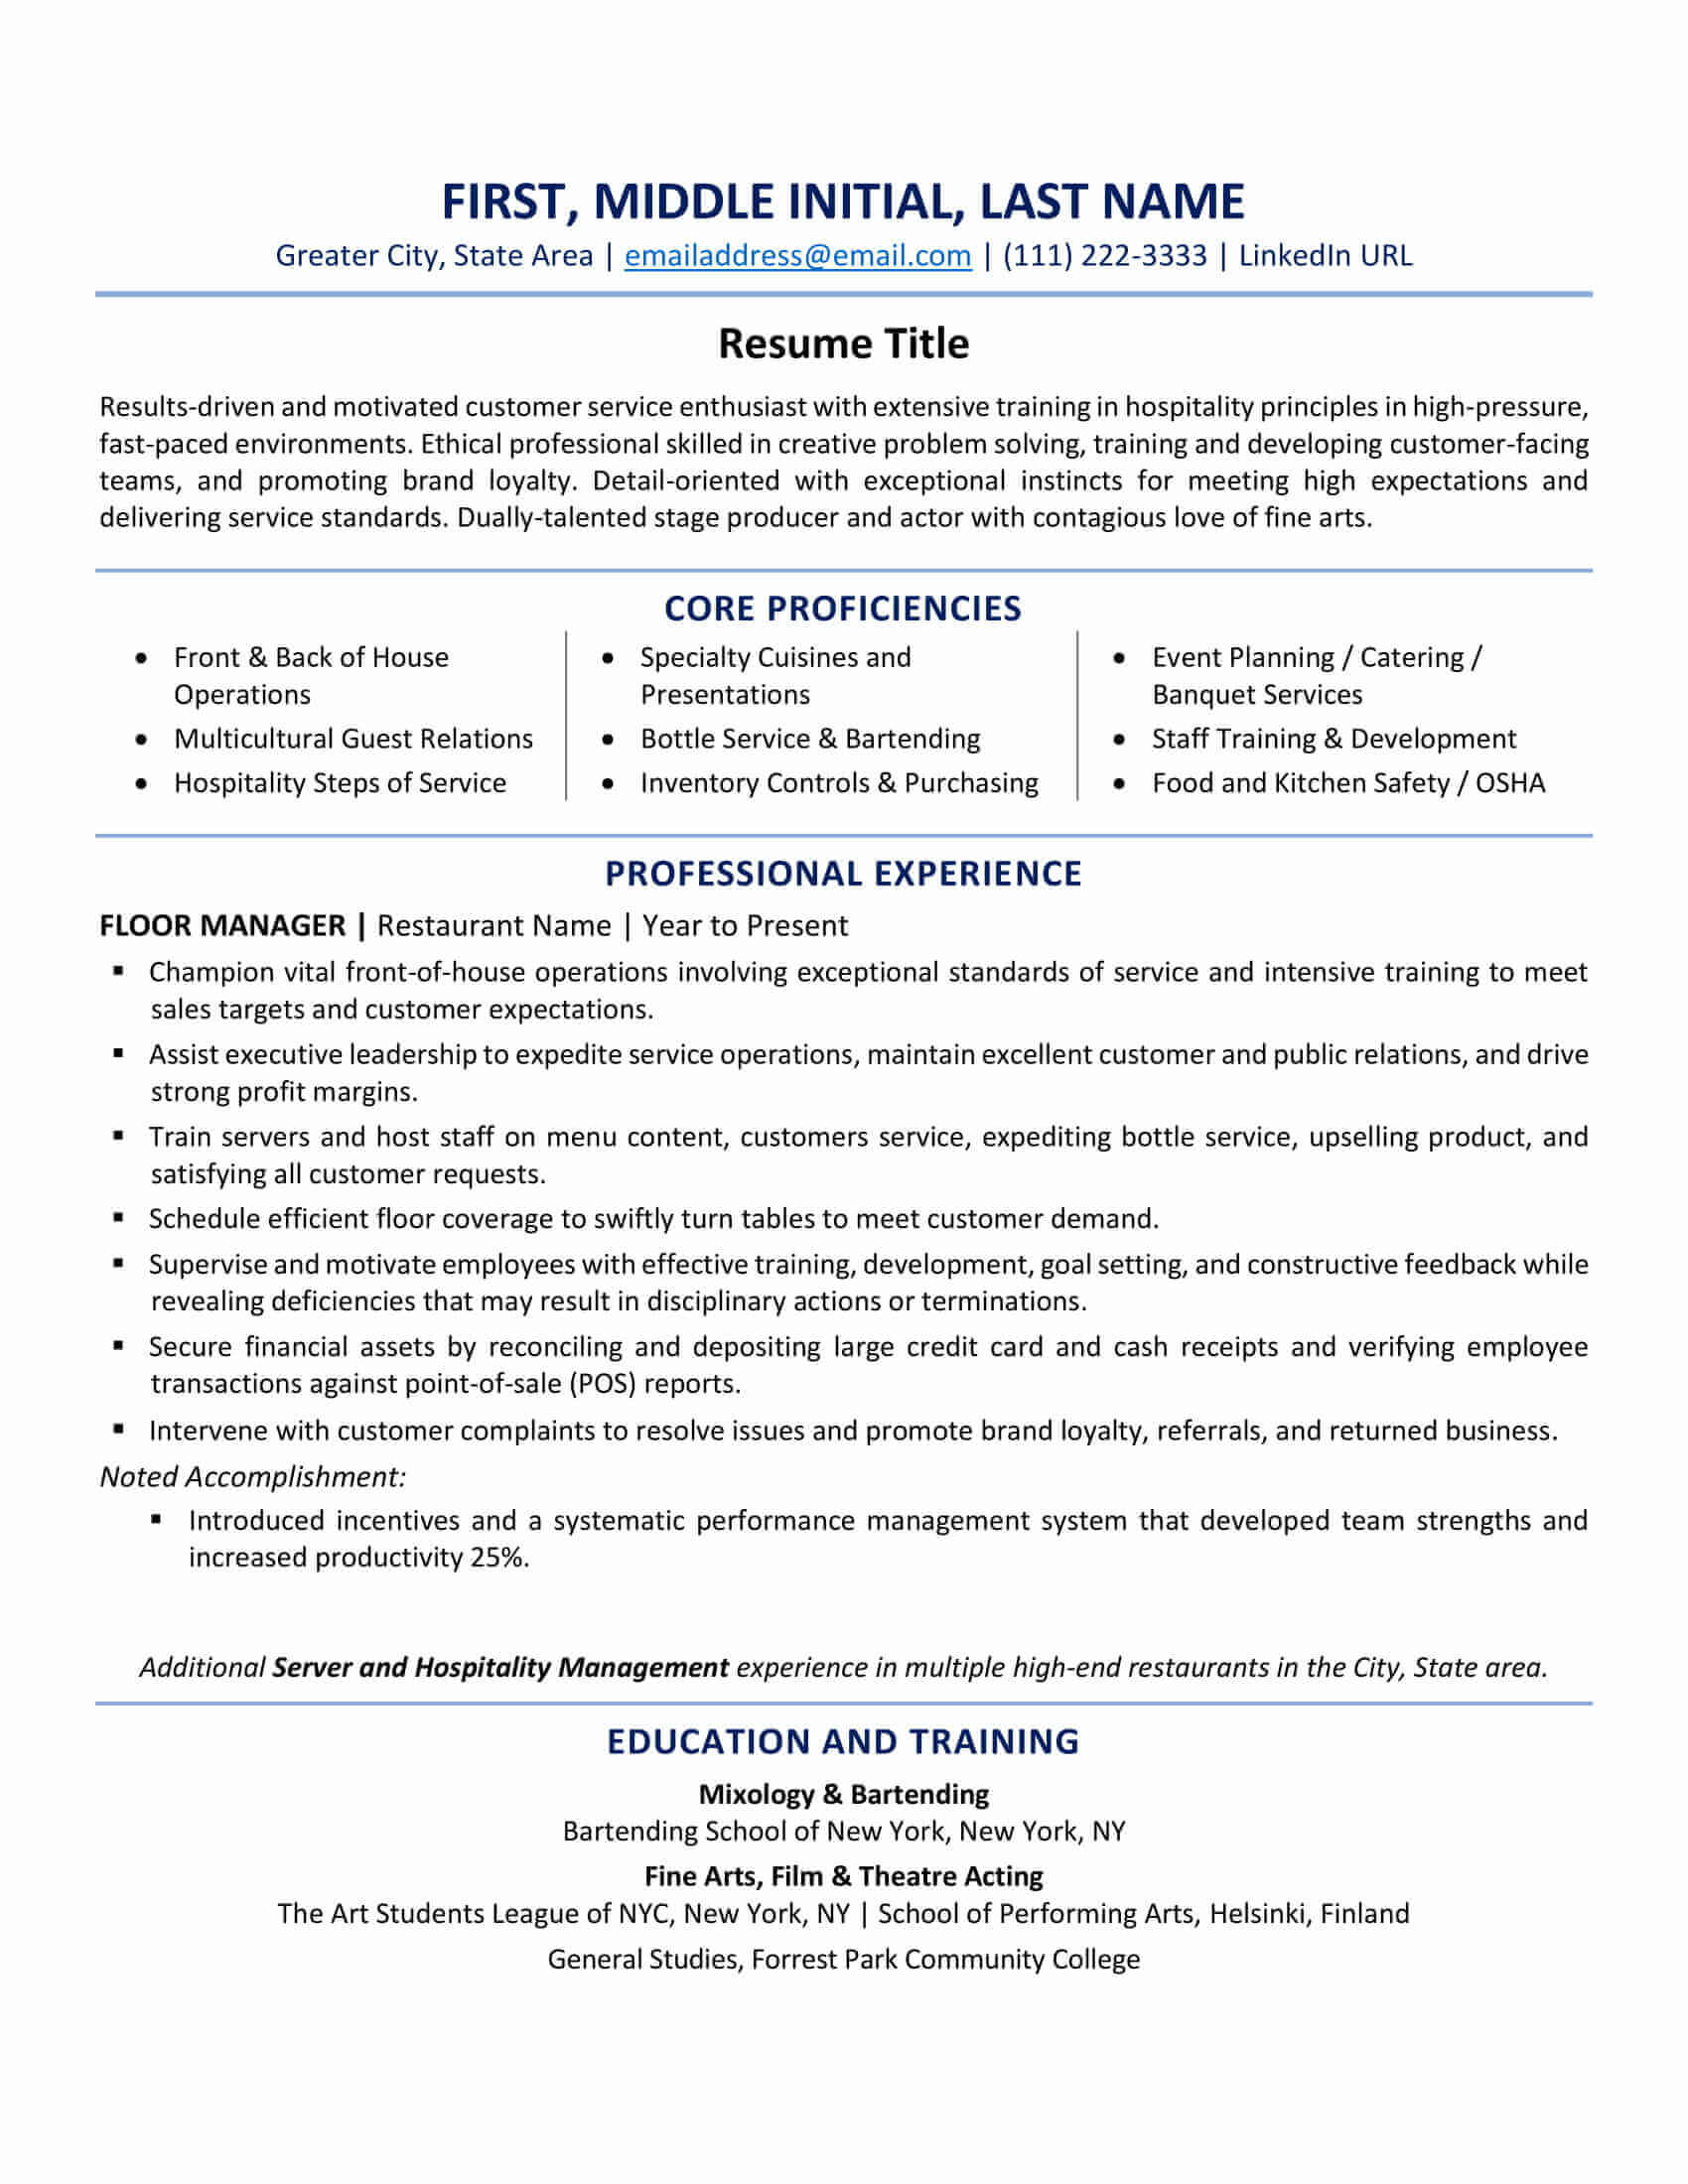 ats resume test free checker formatting examples management score when moving to the us Resume Management Score Resume